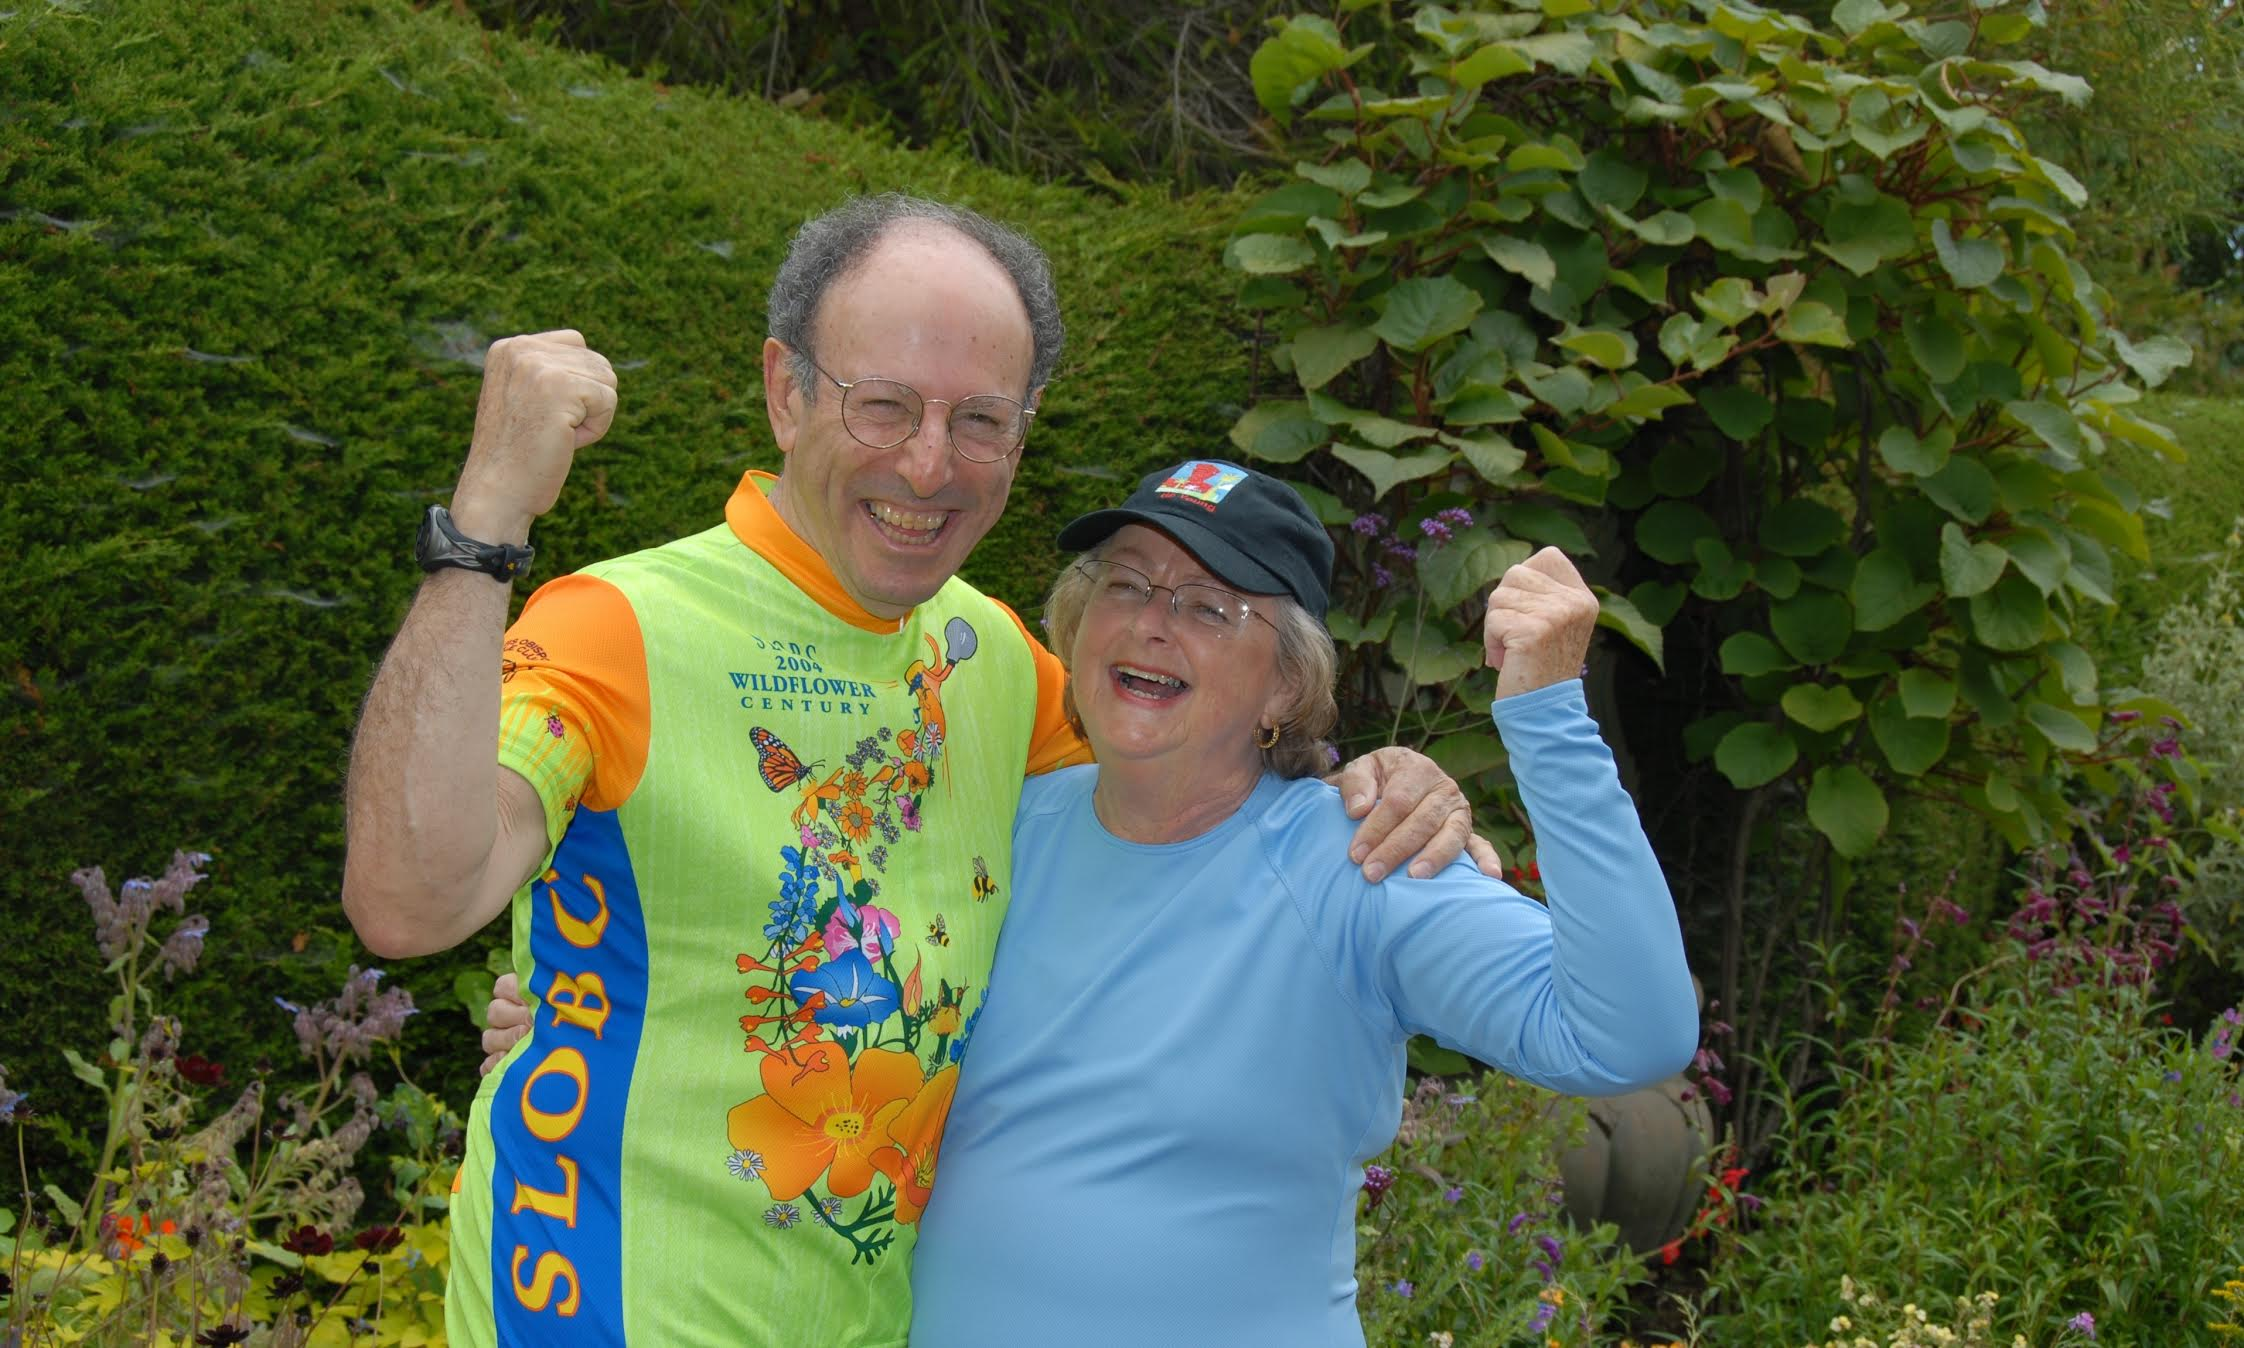 Carole (in her original GH Rashguard) and Paul (in his San Luis Obispo Bicycle Club Wildflower Century Jersey) posing for their 2004 holiday card.